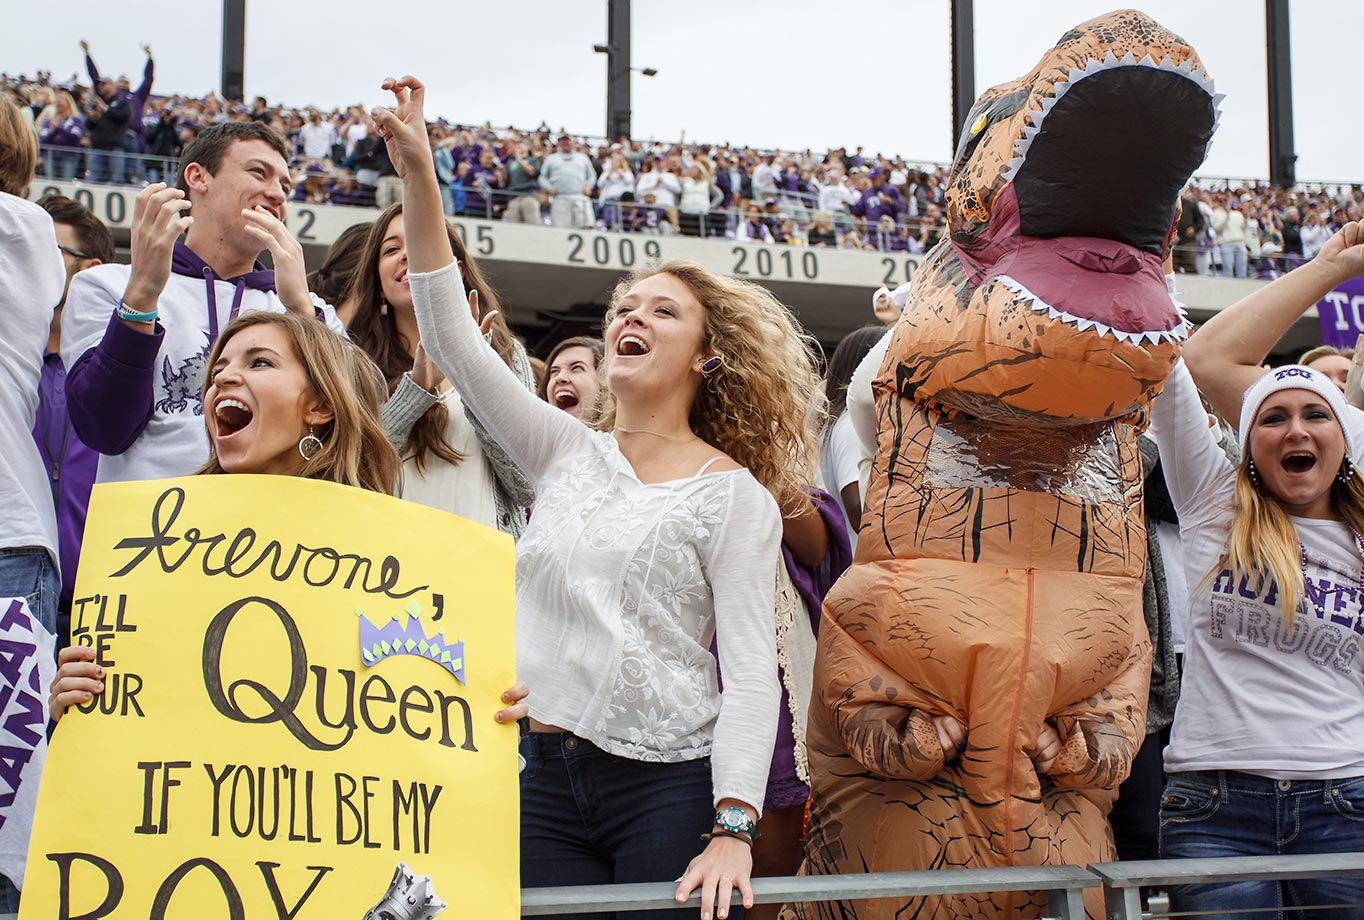 TCU Horned Frogs fans get a little crazy at a game against Kansas.